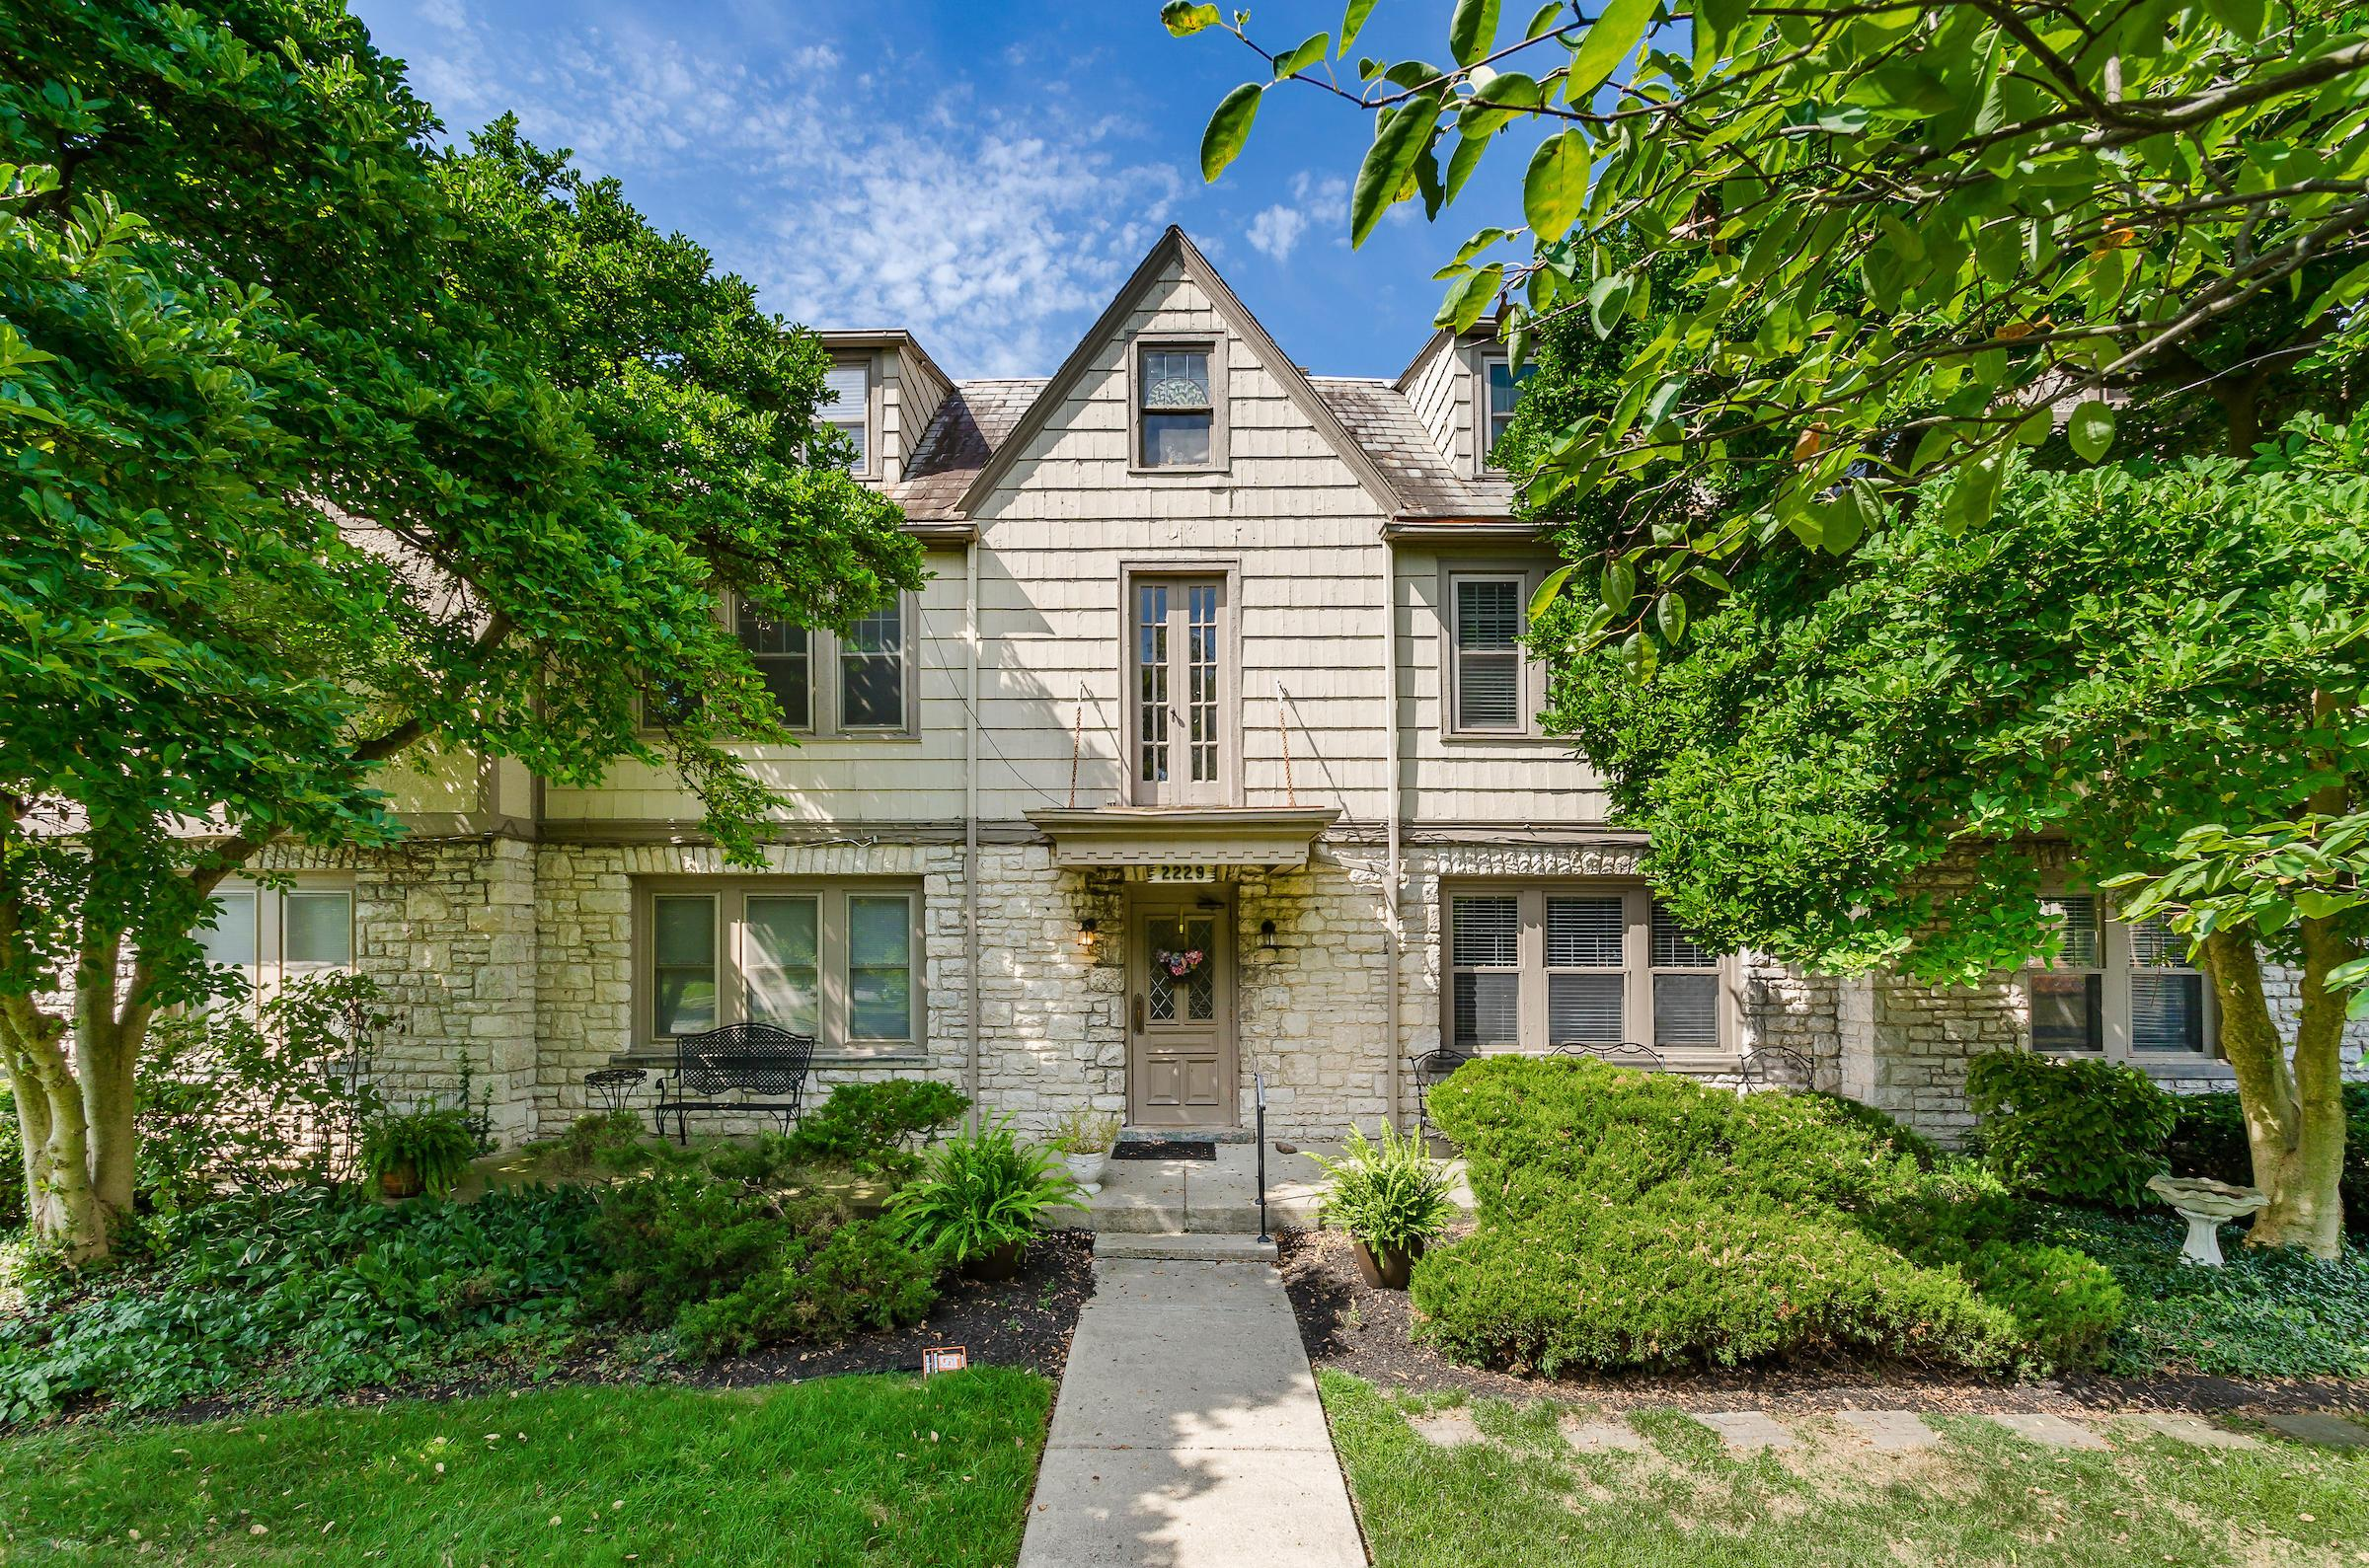 Property for sale at 2229 Coventry Road 5, Upper Arlington, Ohio 43221